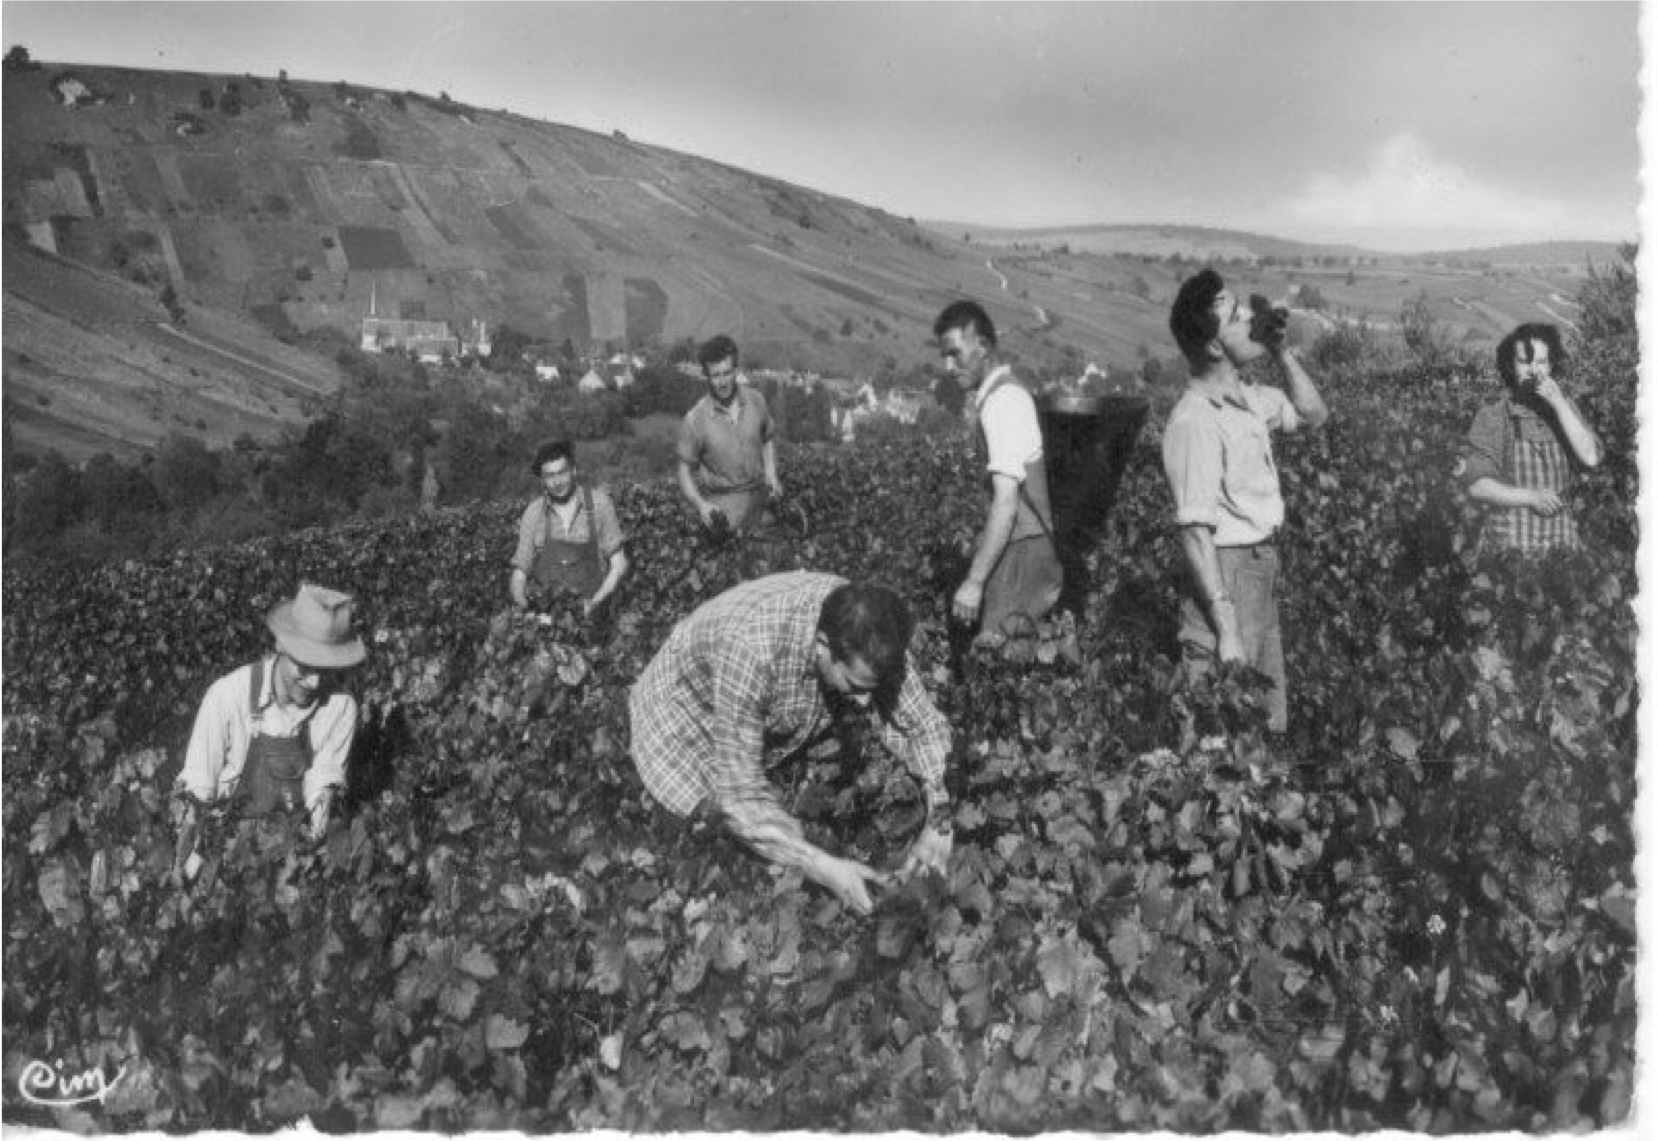 Harvest in Chavignol during the 1950's